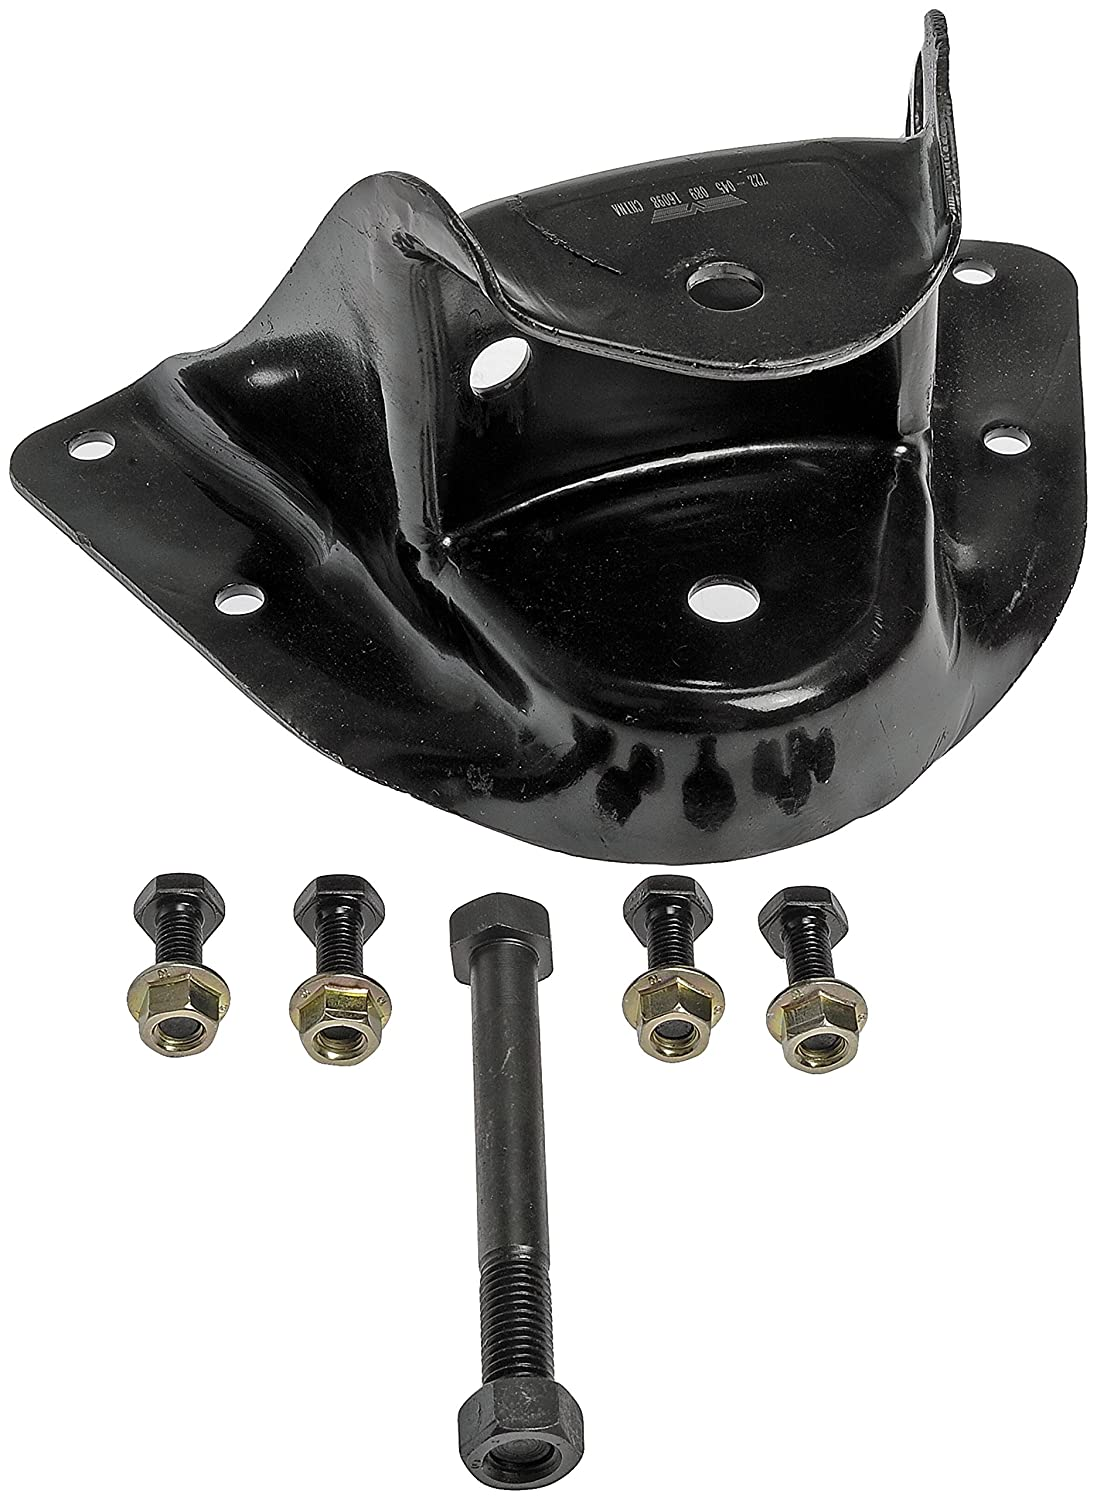 Dorman OE Solutions 722-045 Leaf Spring Bracket Kit (Front Position)